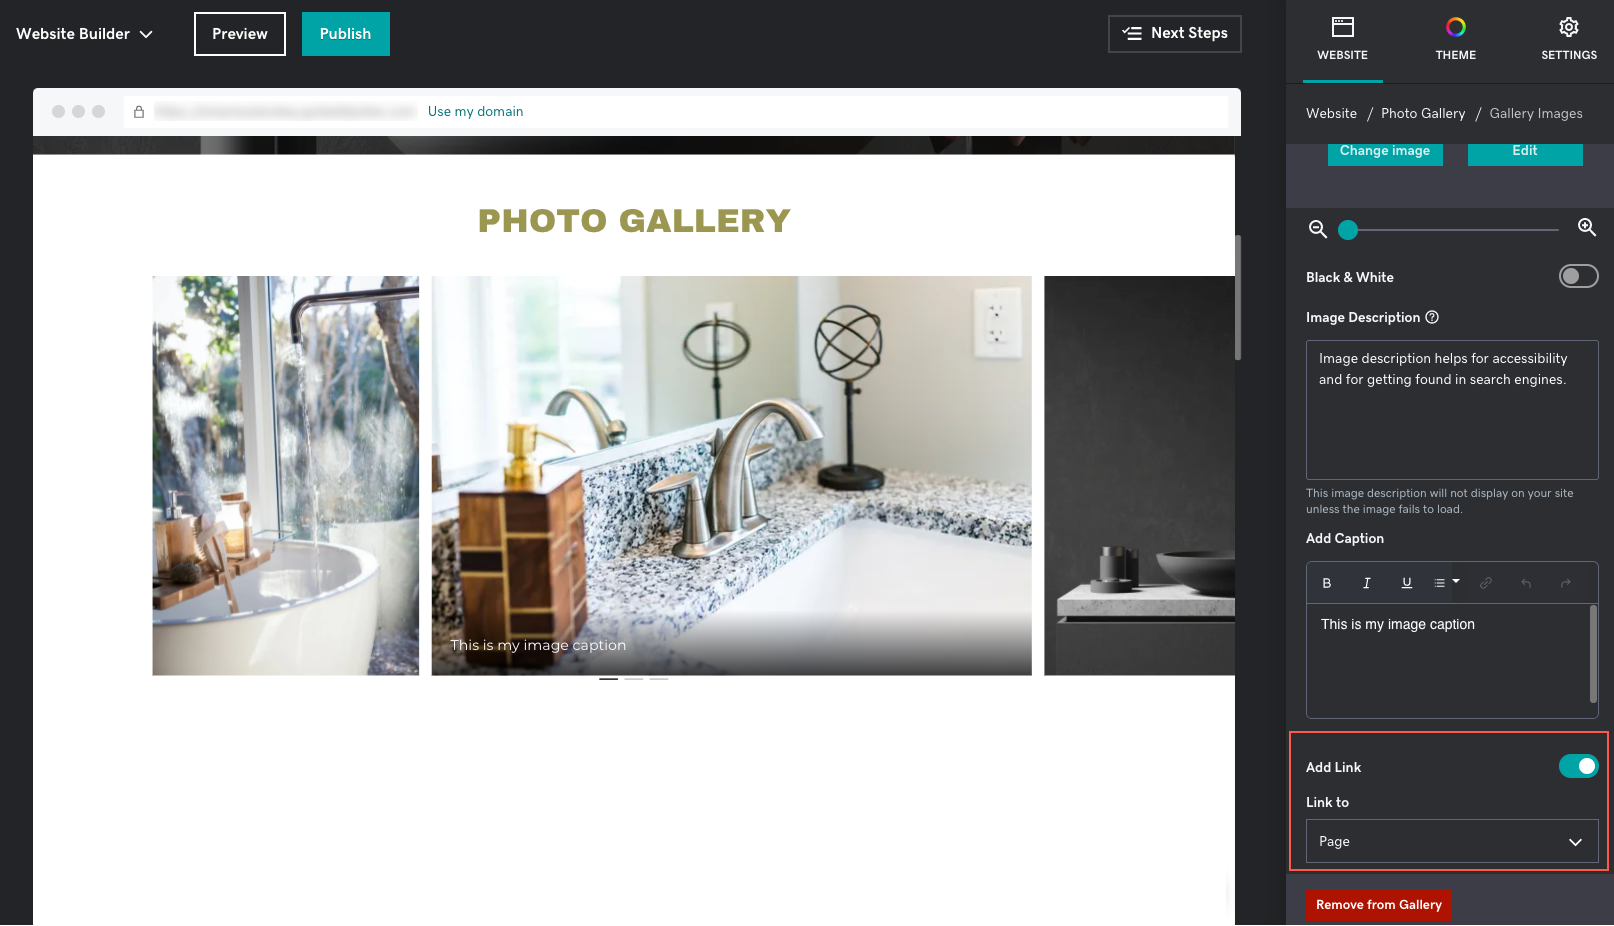 How to link a photo gallery image